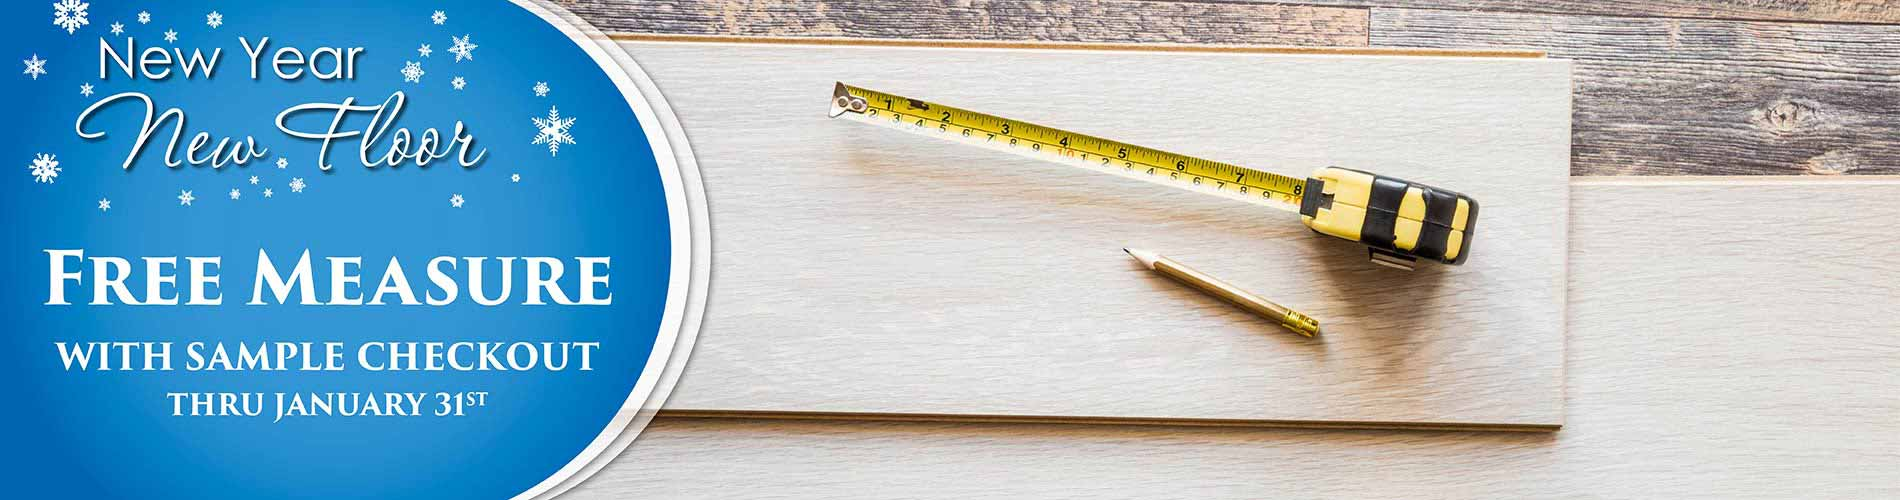 Get a free measure with sample checkout during our new year new floor sale at Erskine Interiors